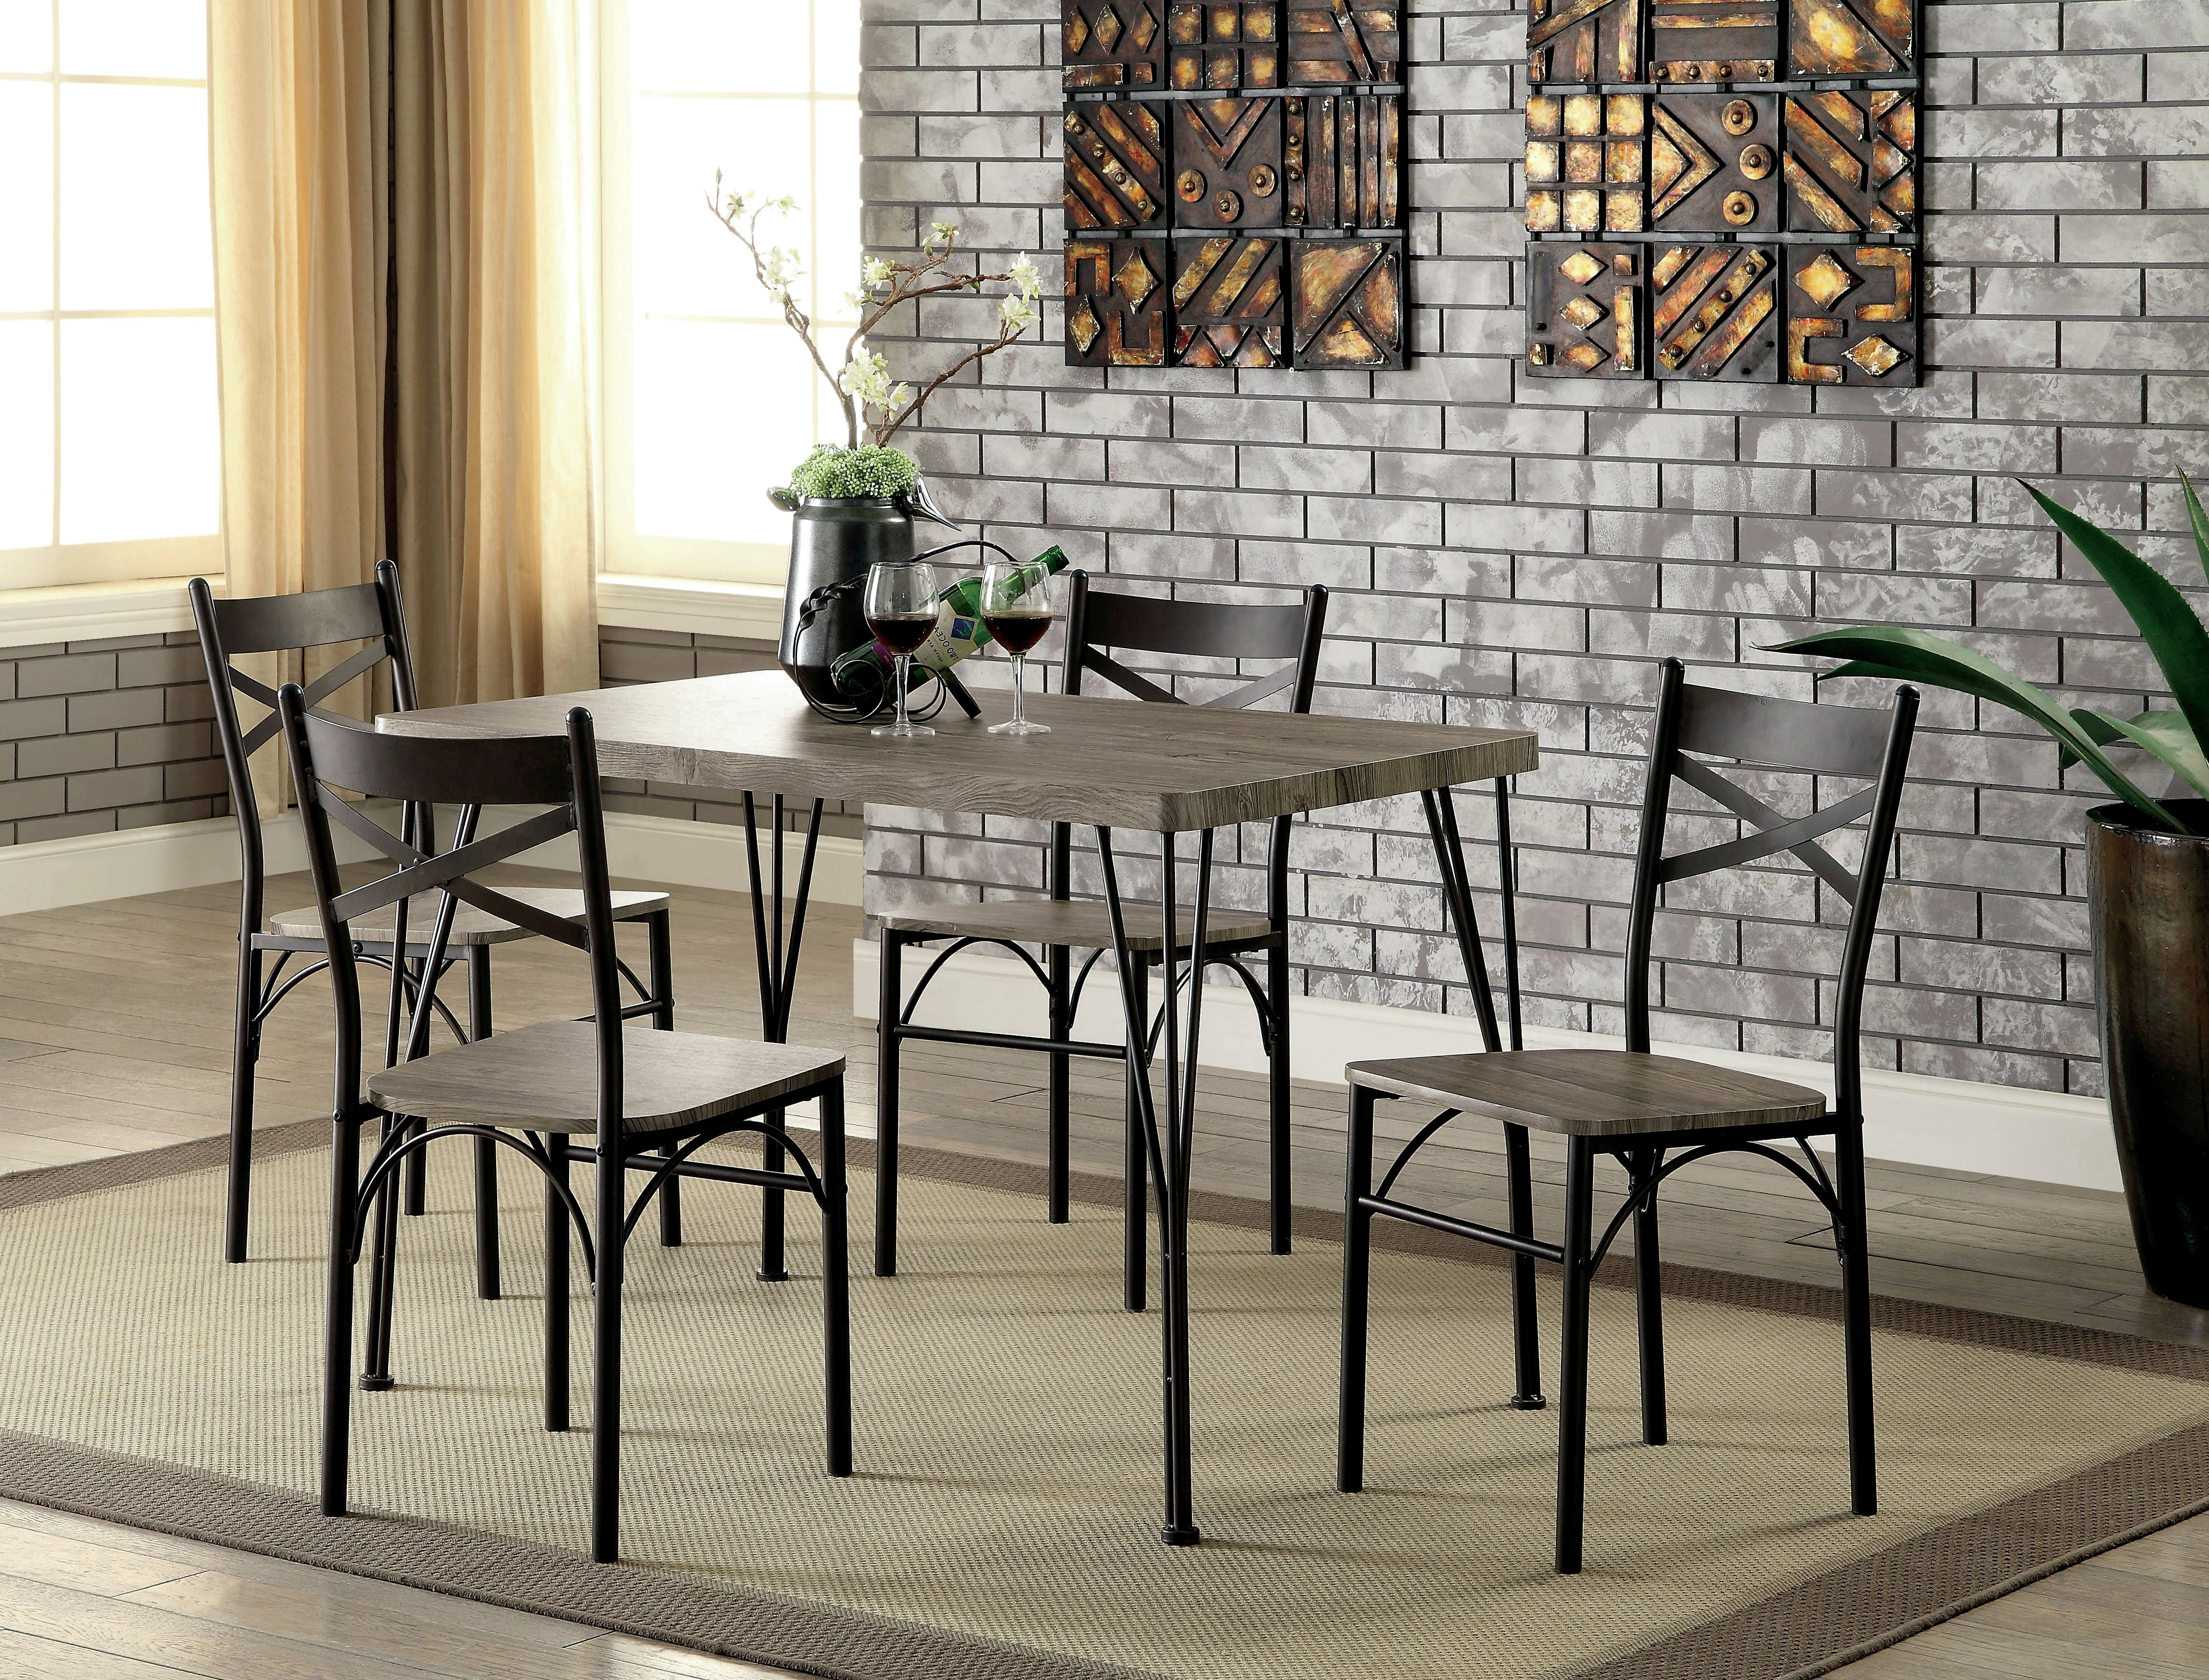 Most Popular Middleport 5 Piece Dining Sets With Regard To Andover Mills Middleport 5 Piece Dining Set & Reviews (View 2 of 25)